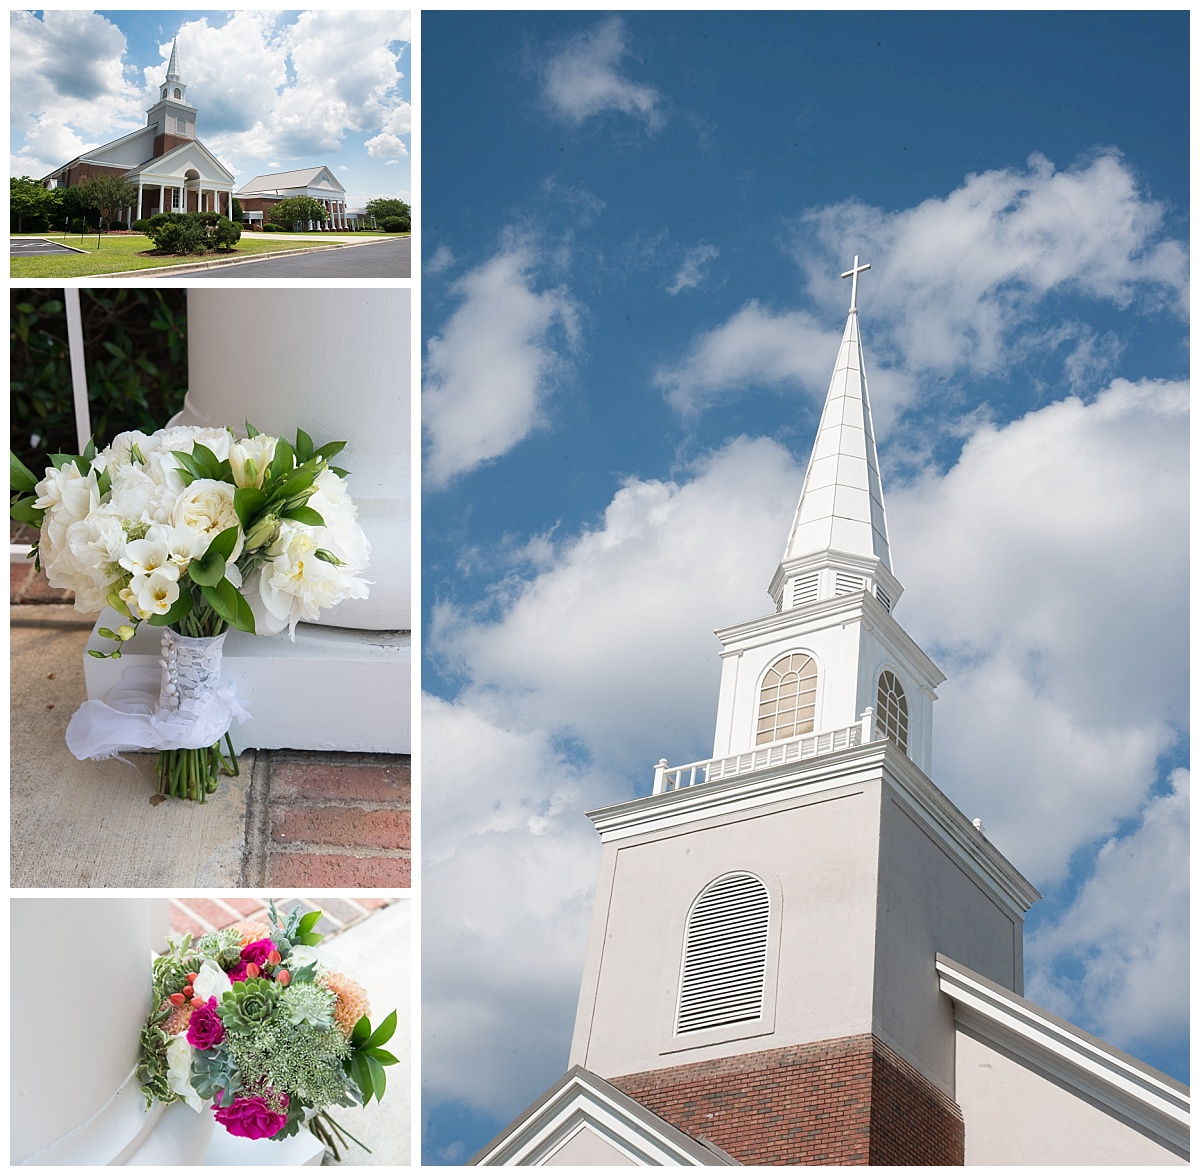 NE Presbyterian church and colorful bouquet